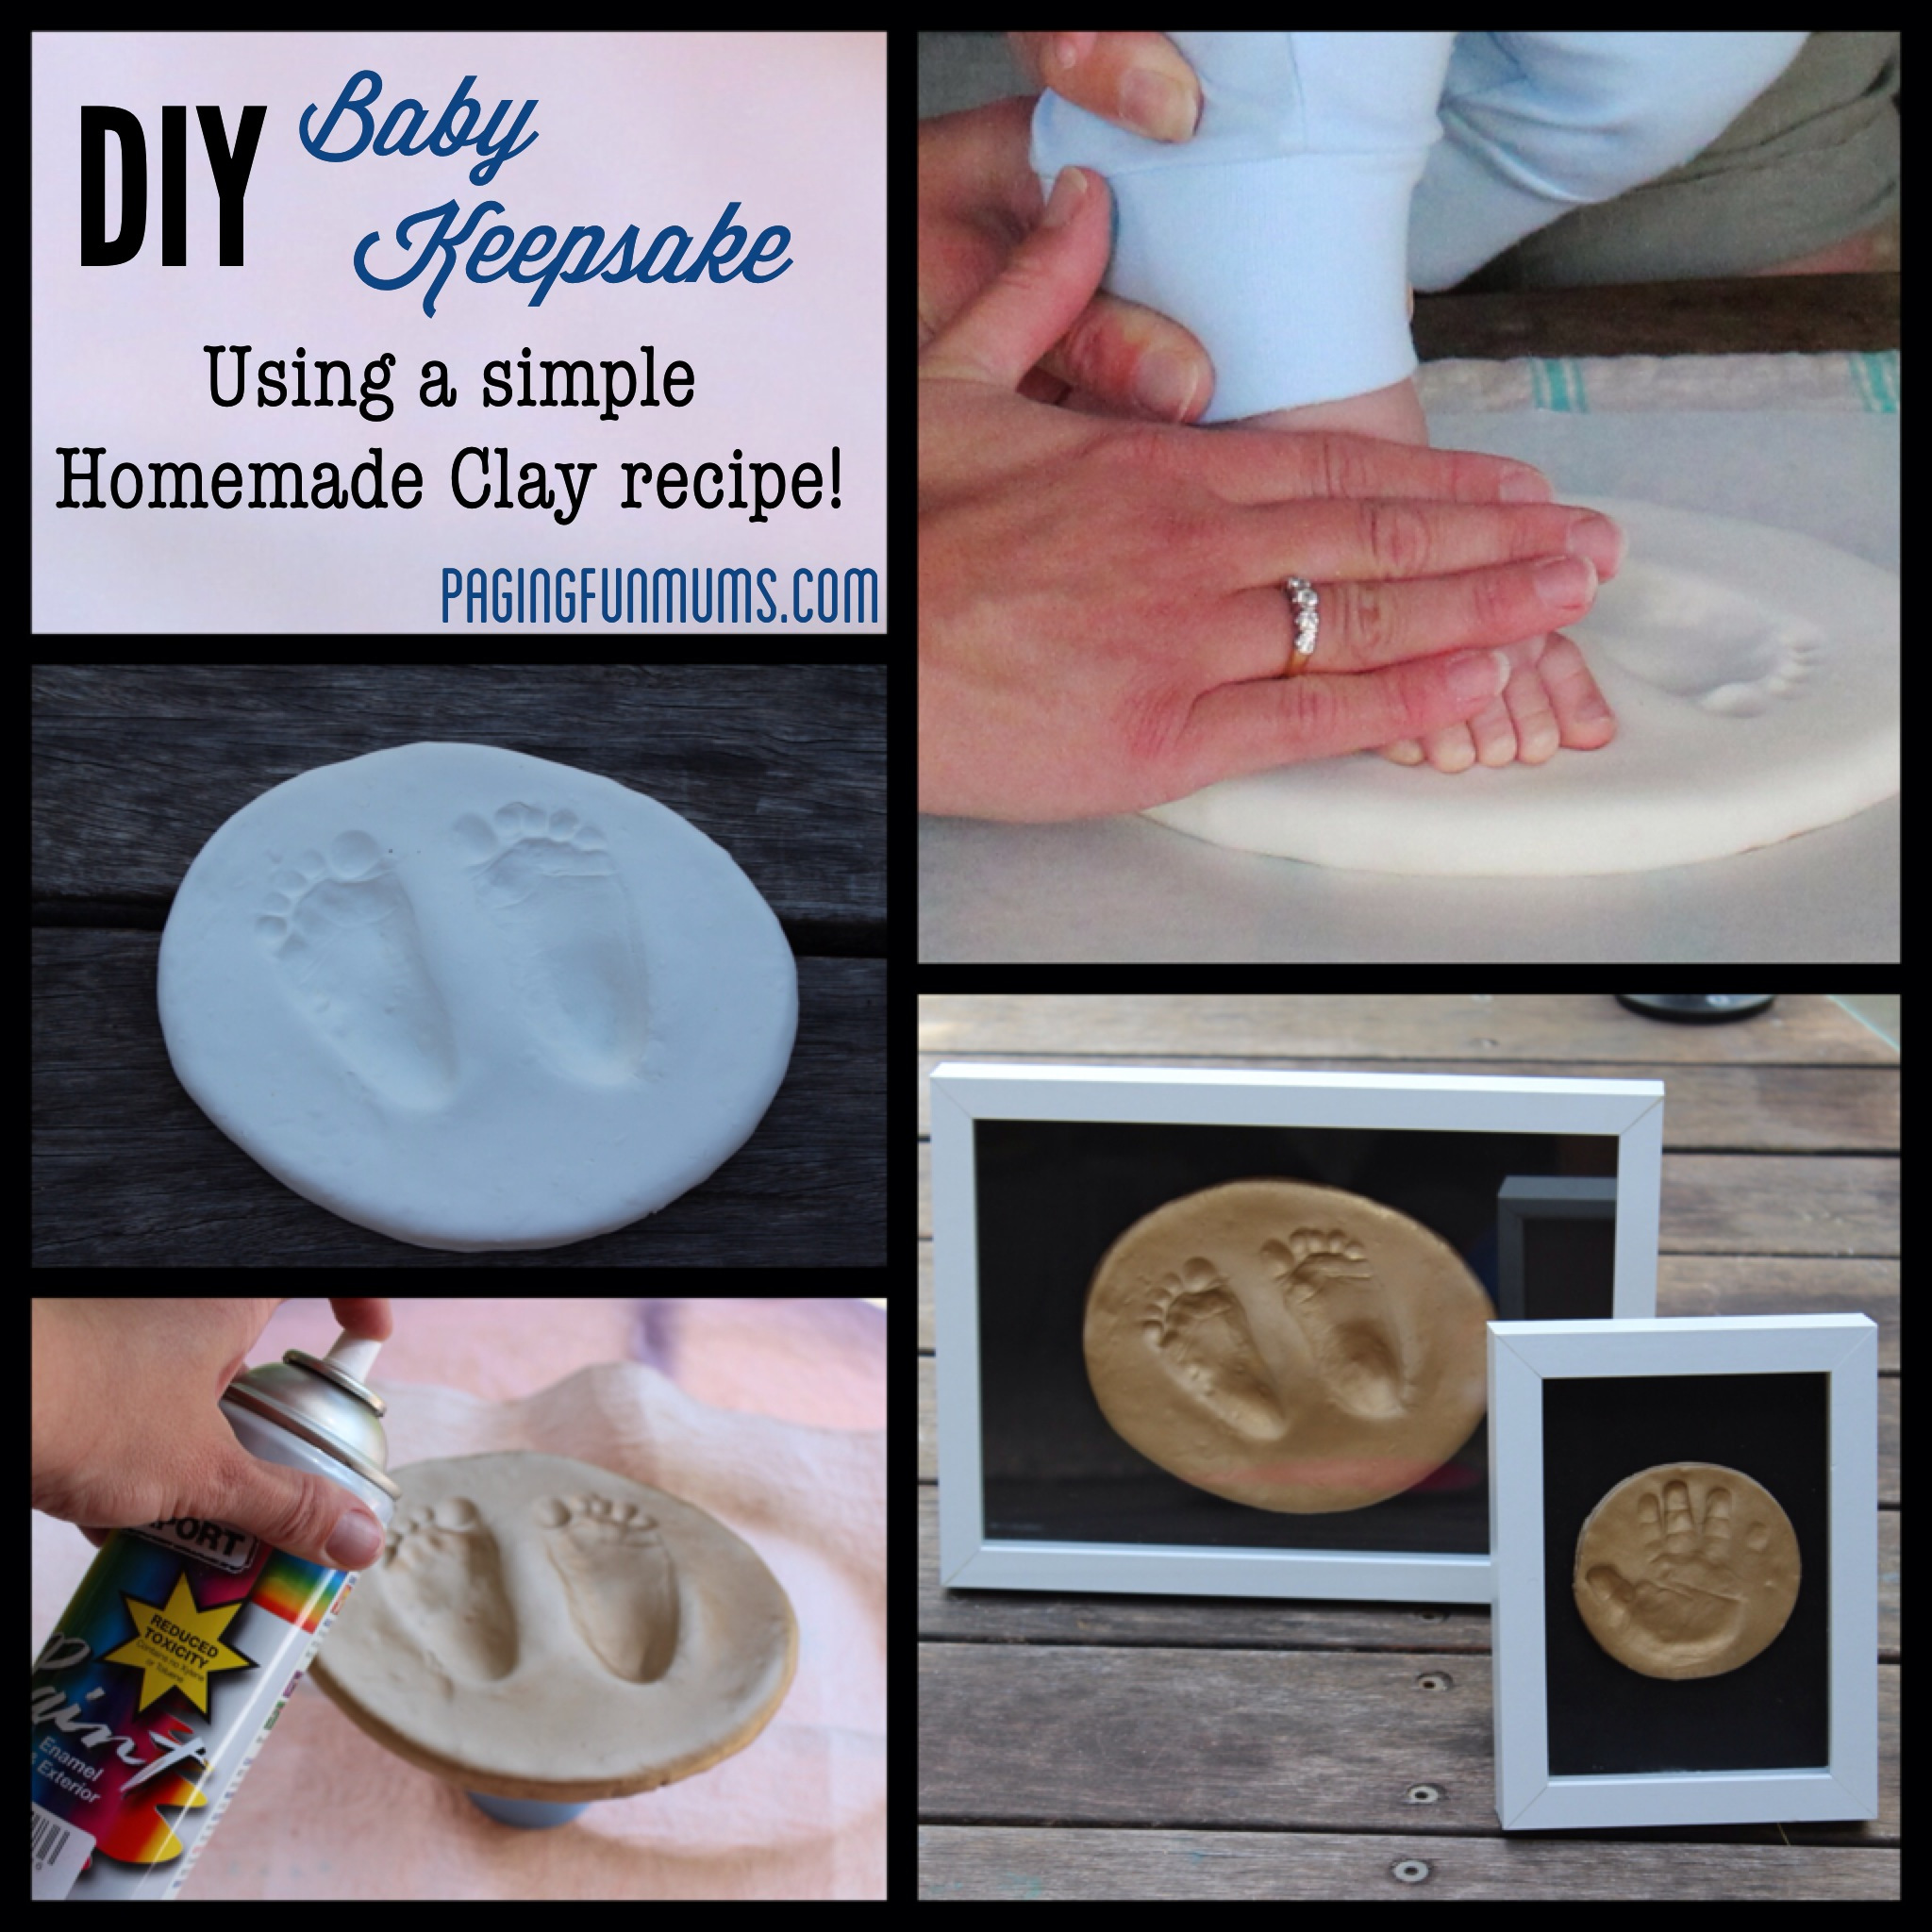 DIY Baby Keepsake – using Homemade Clay!